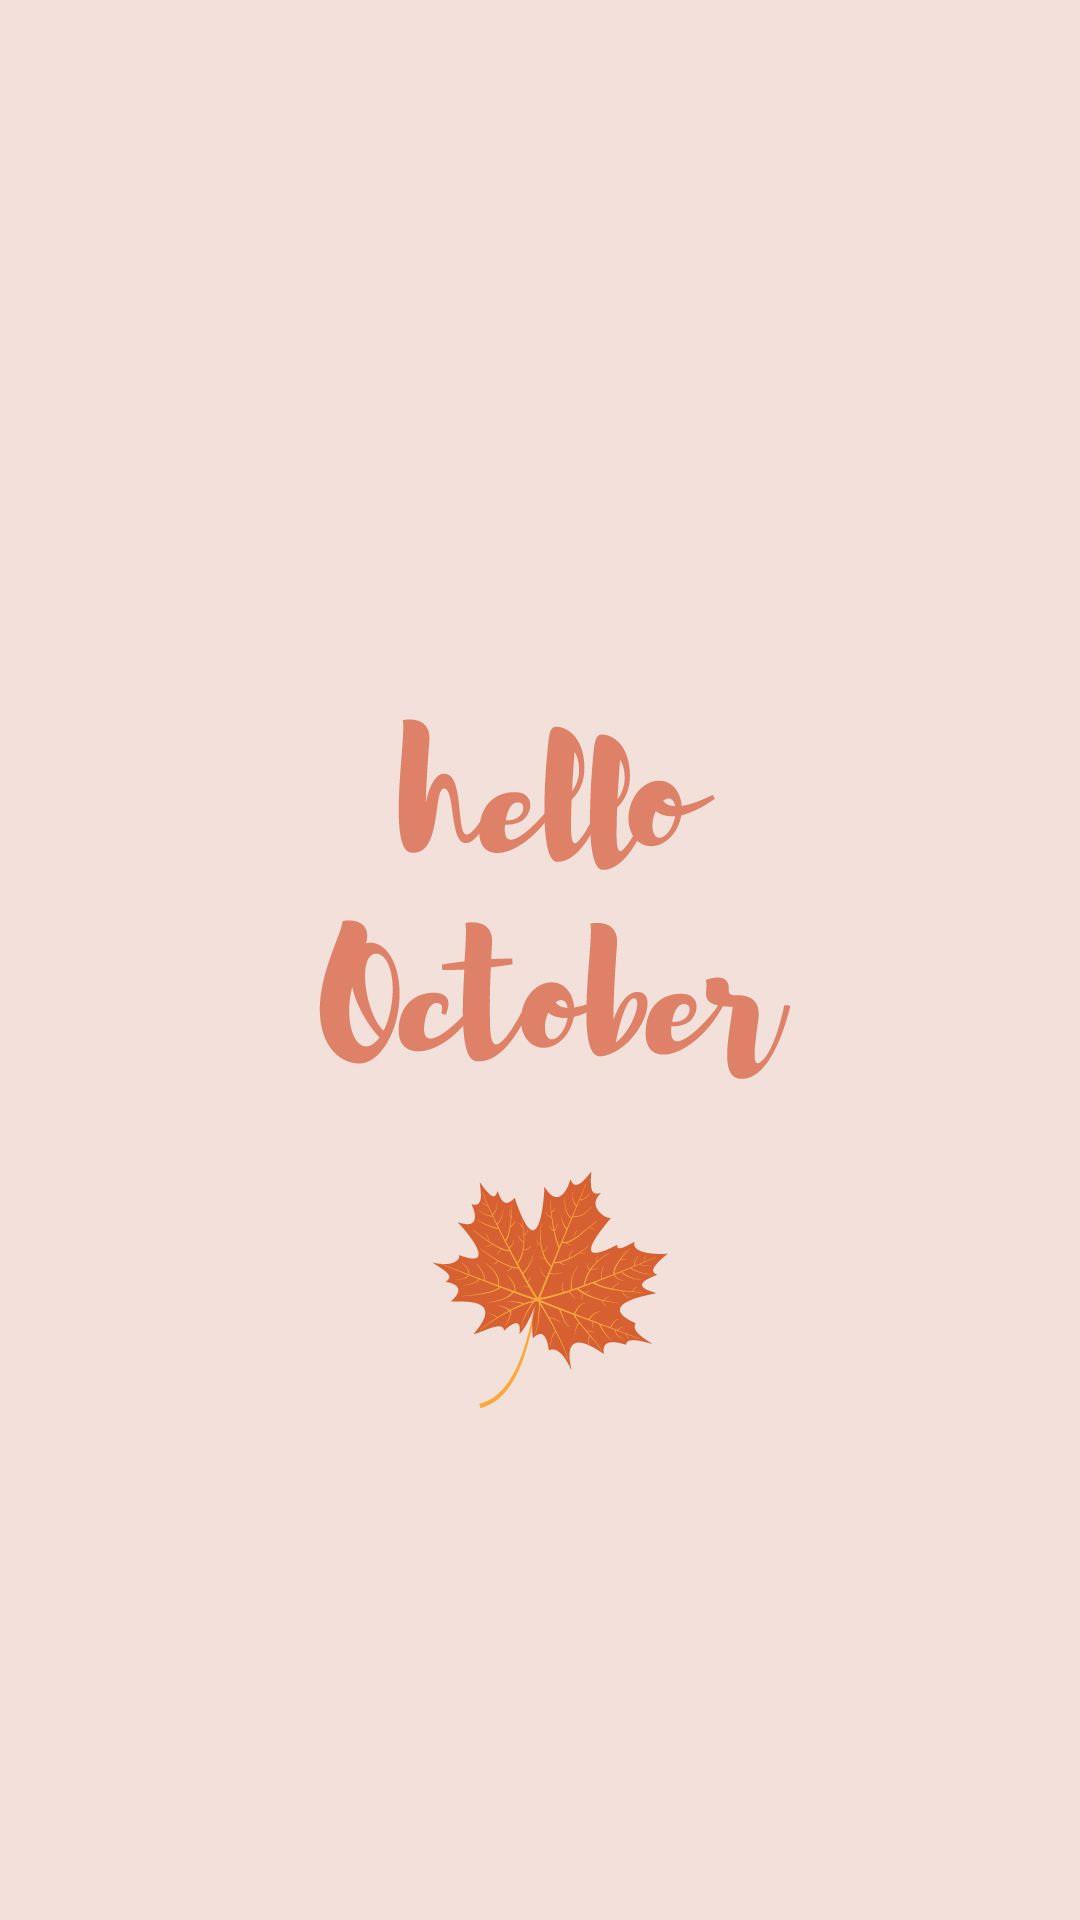 1080x1920 October 2018 calendar wallpapers for your iPhone and Android